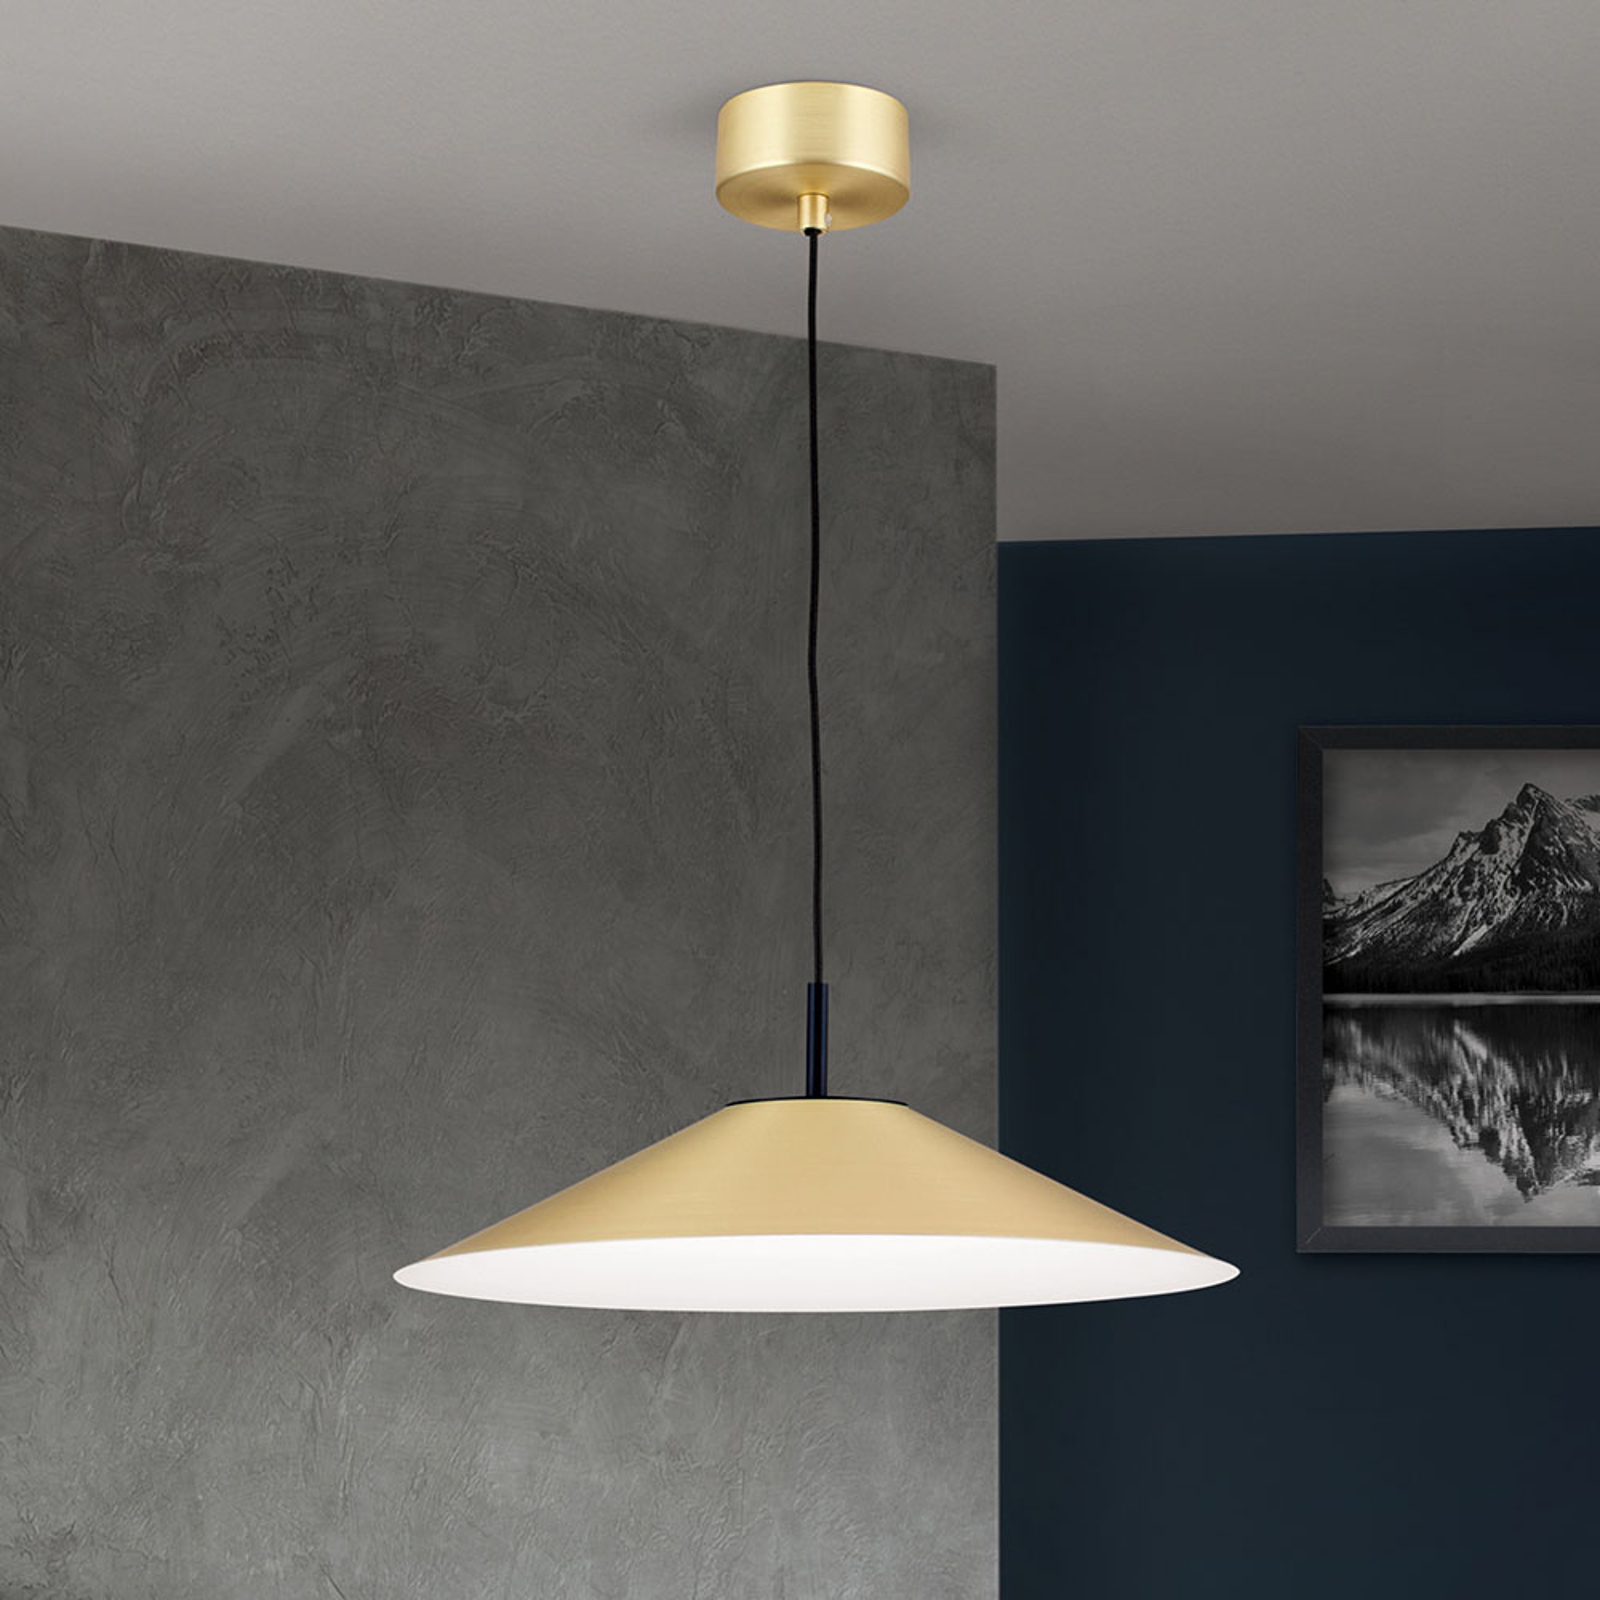 Suspension LED Gourmet, abat-jour laiton-mat